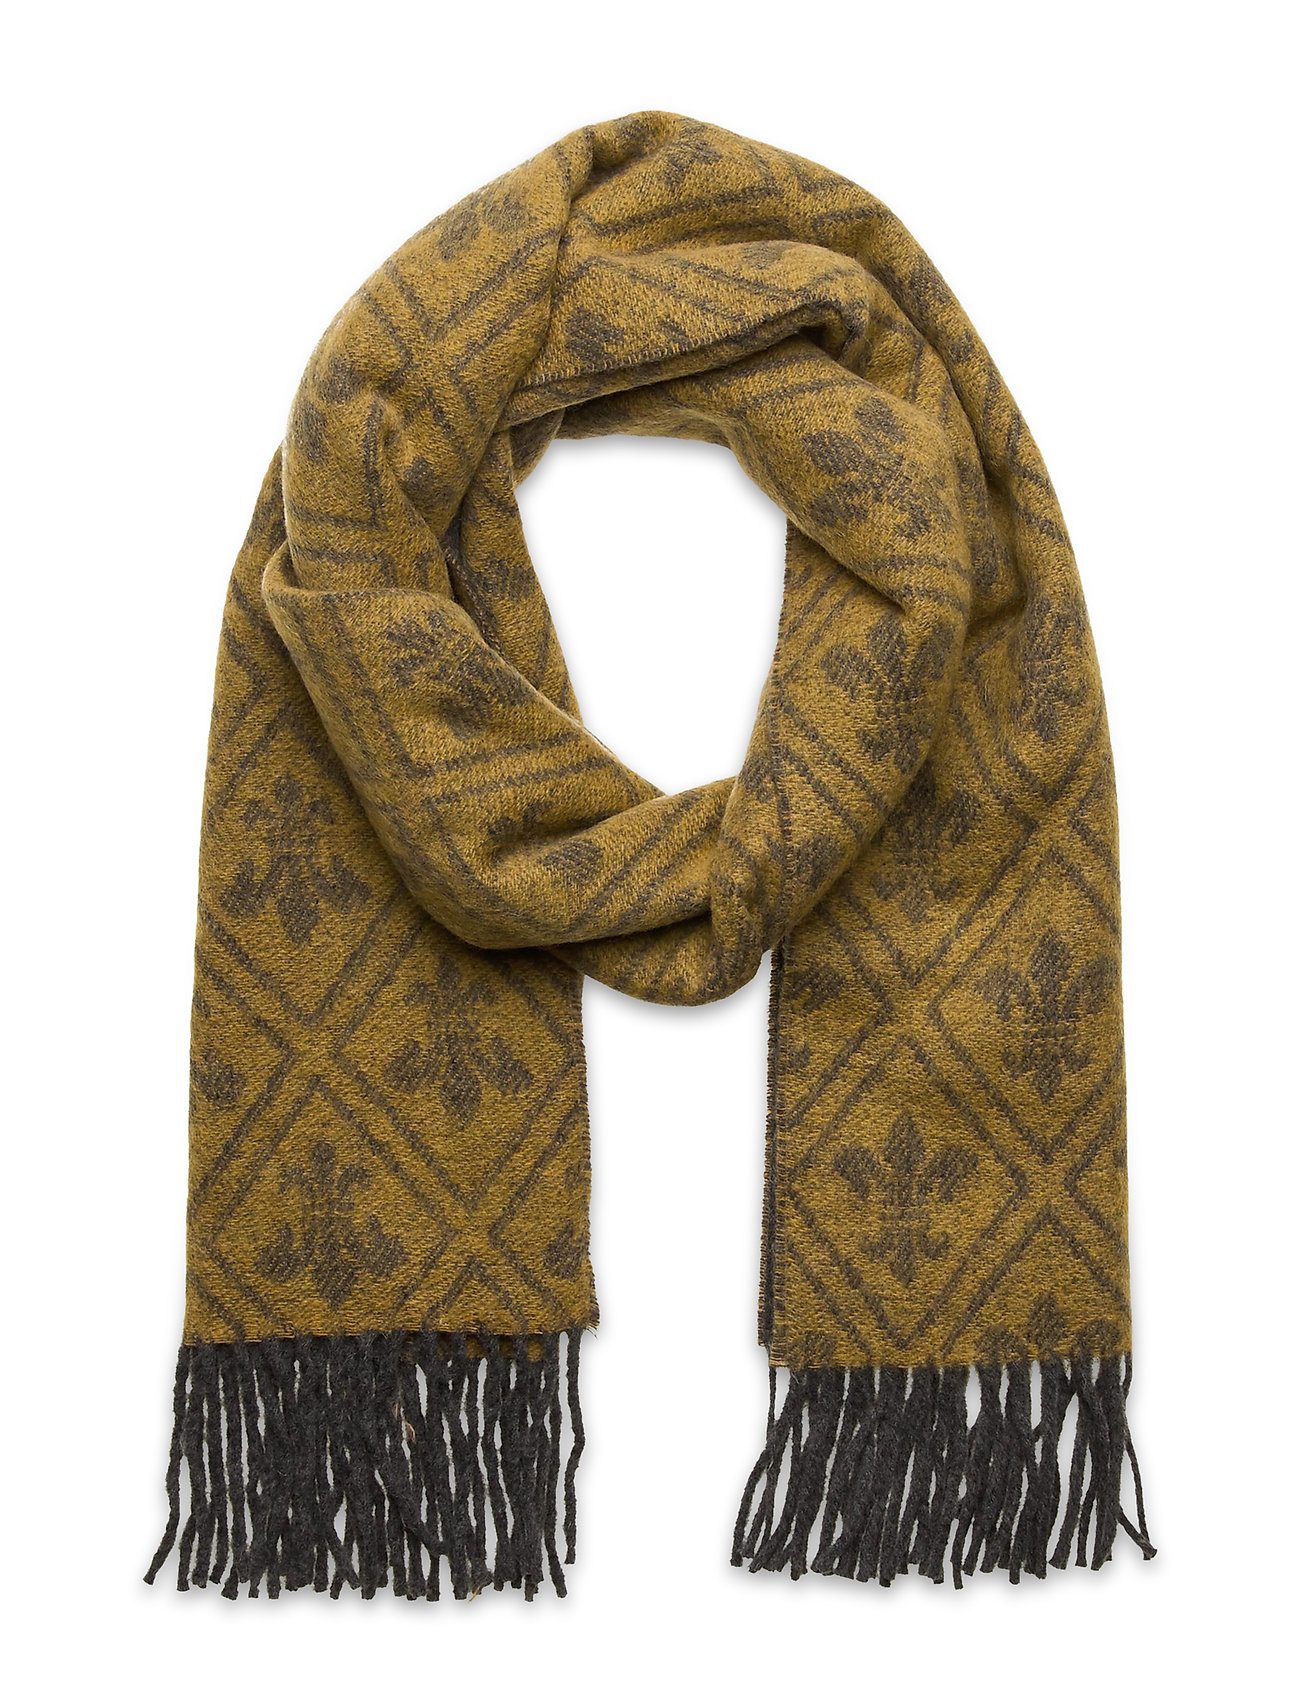 Image of Lady Love Scarf Tørklæde Gul Morris Lady (3474794045)